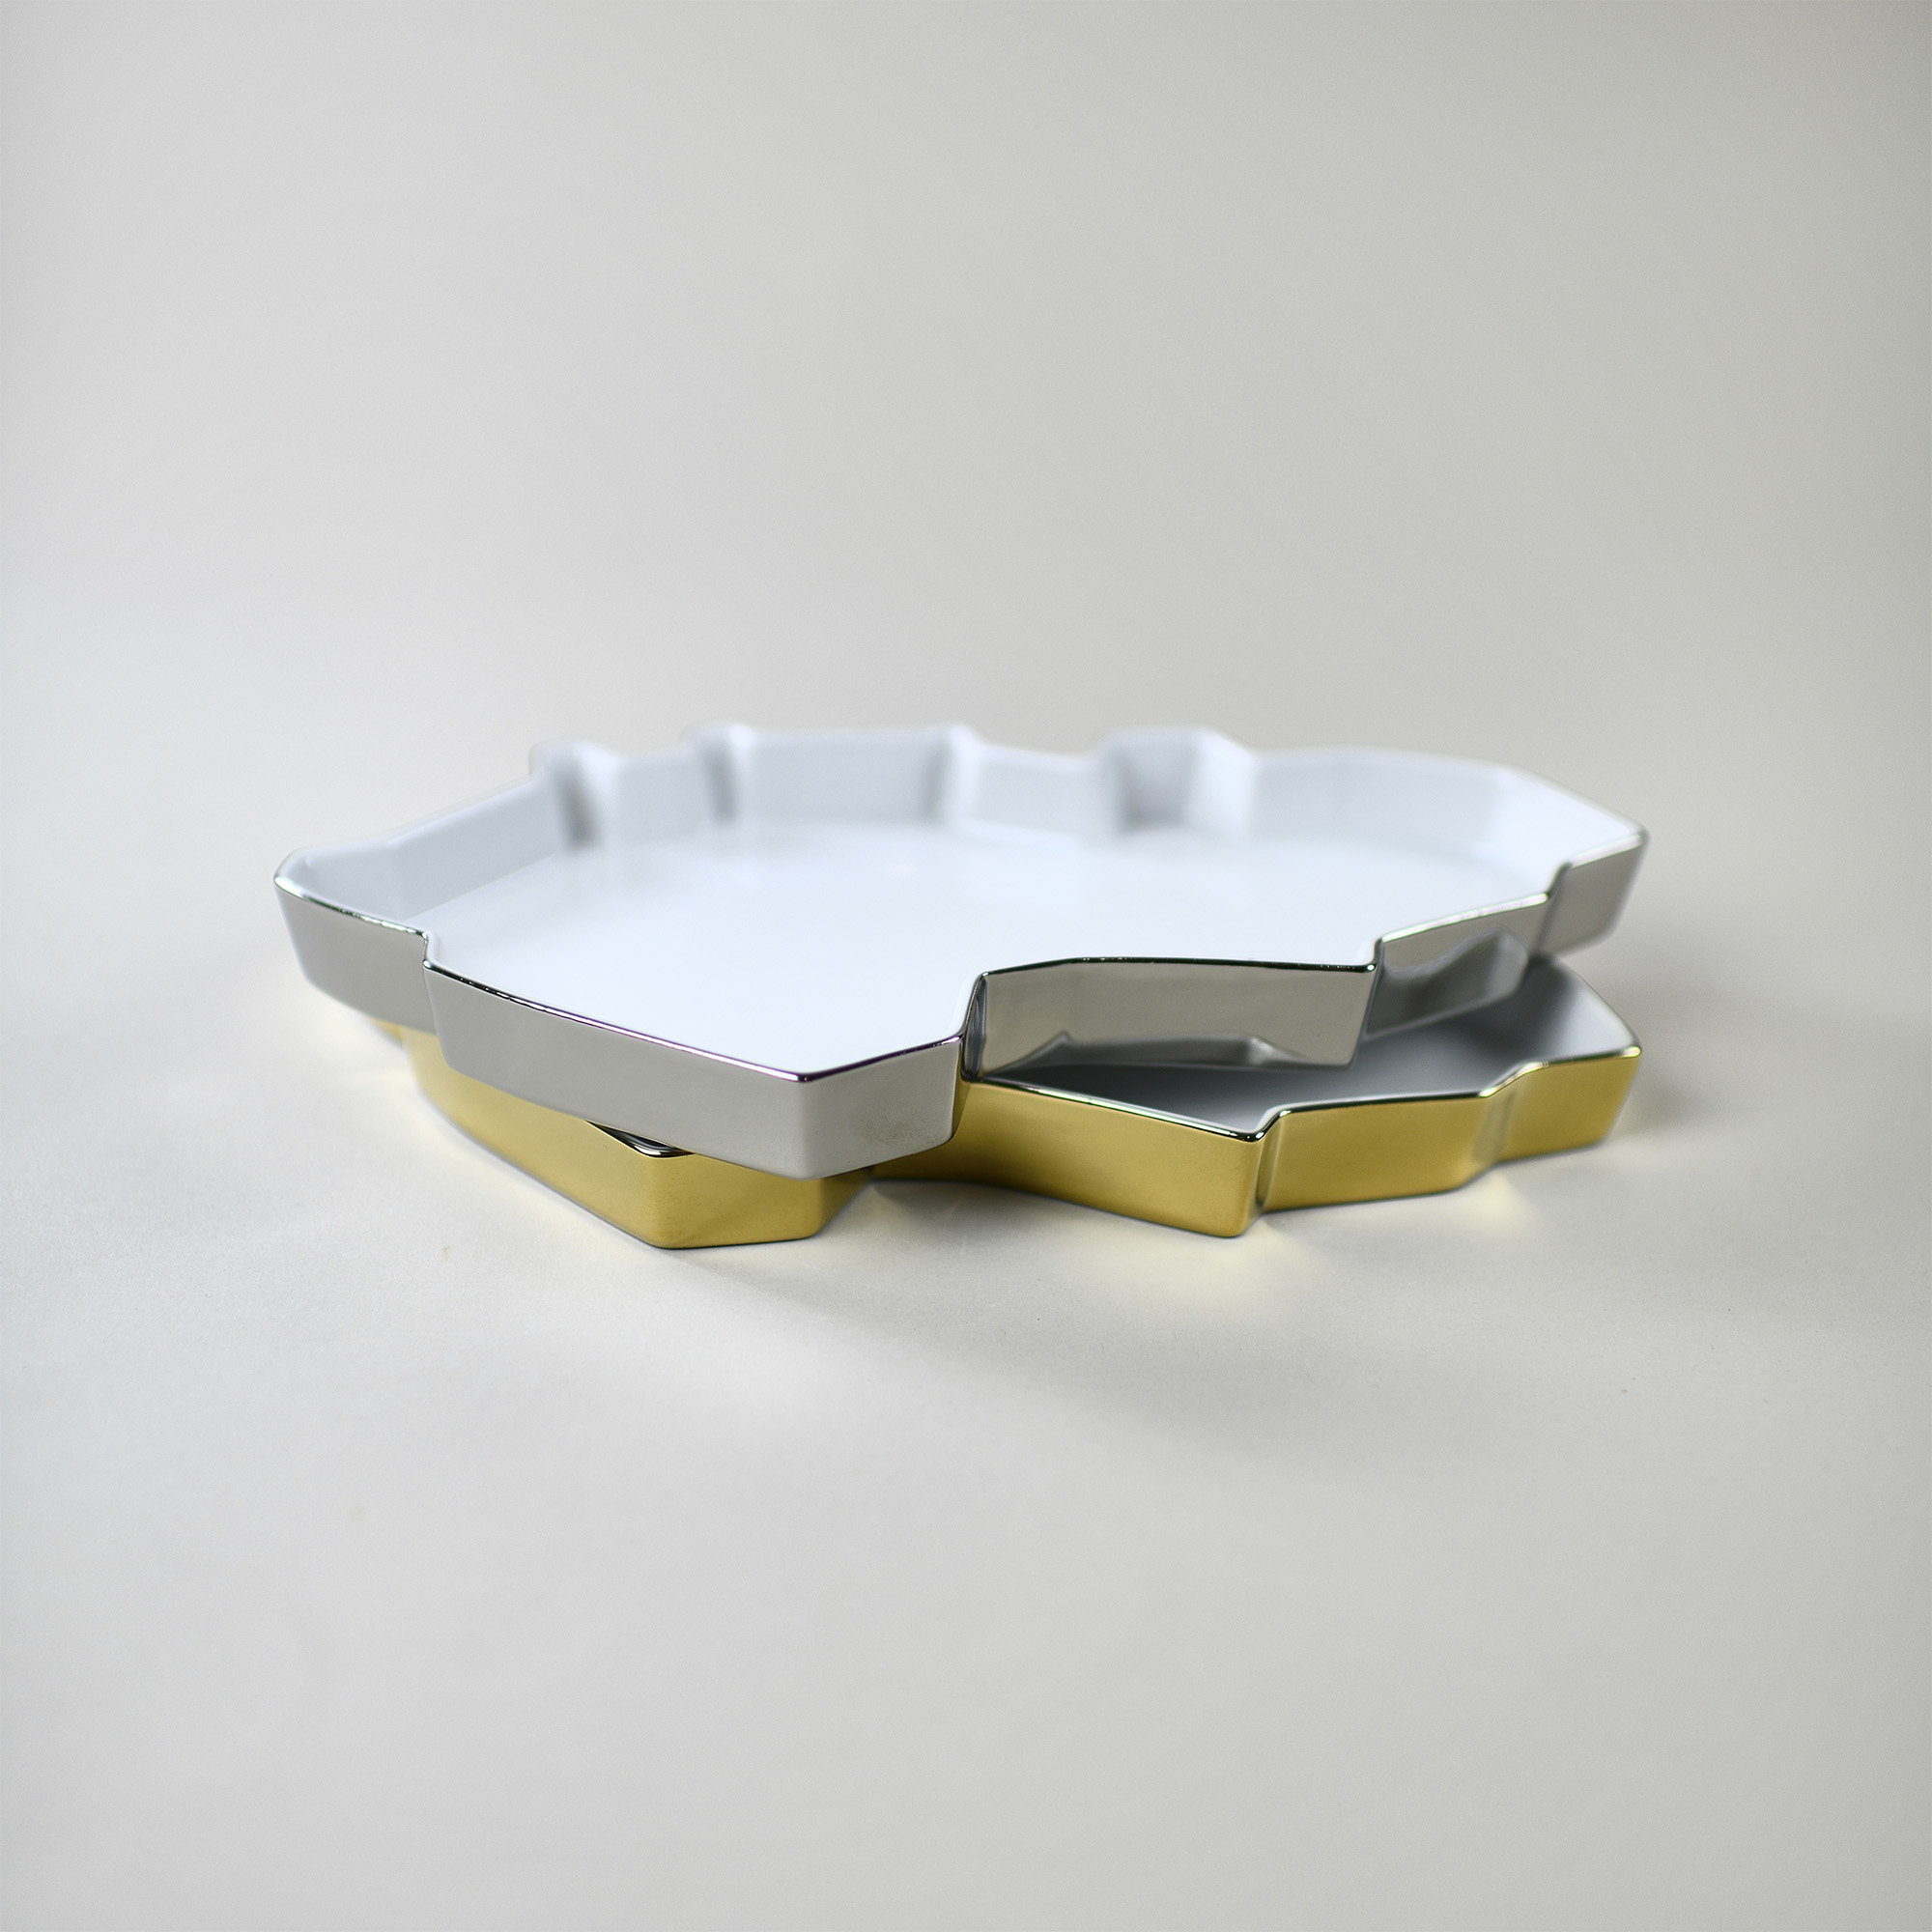 Silver and gold porcelain trays with grapes by Qubus design studio